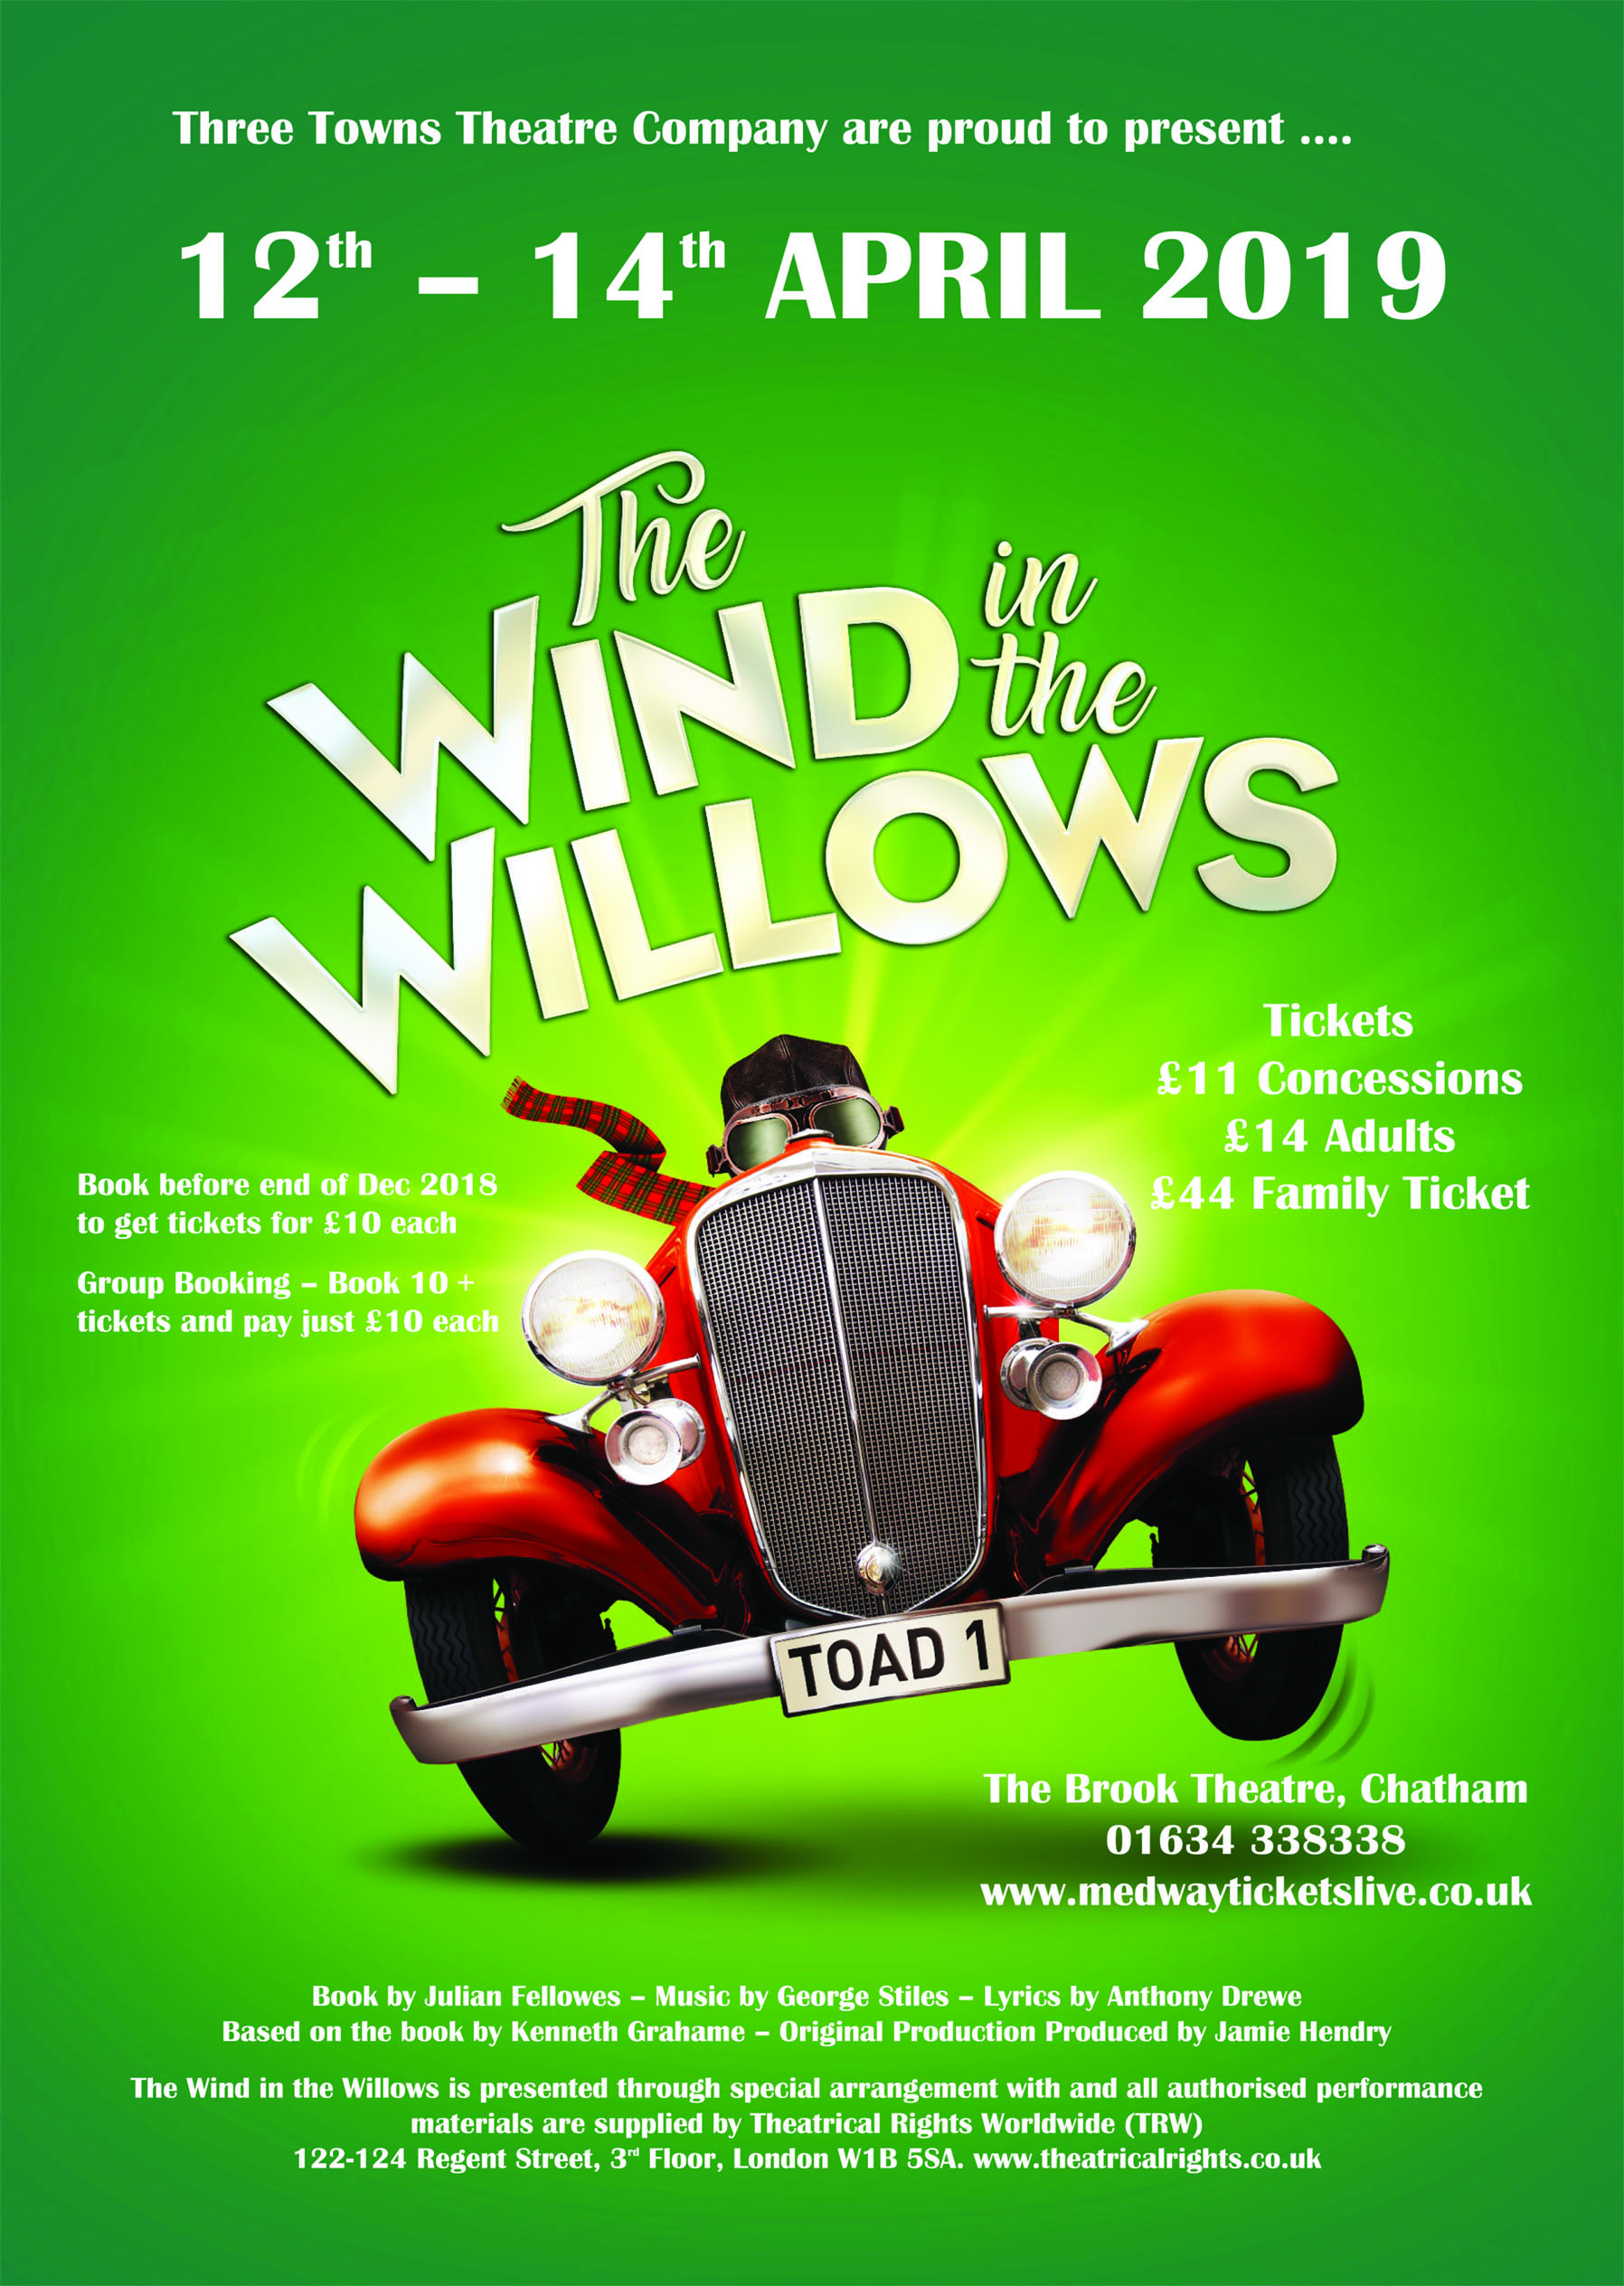 The Wind in the Willows performed by Three Towns Theatre Company